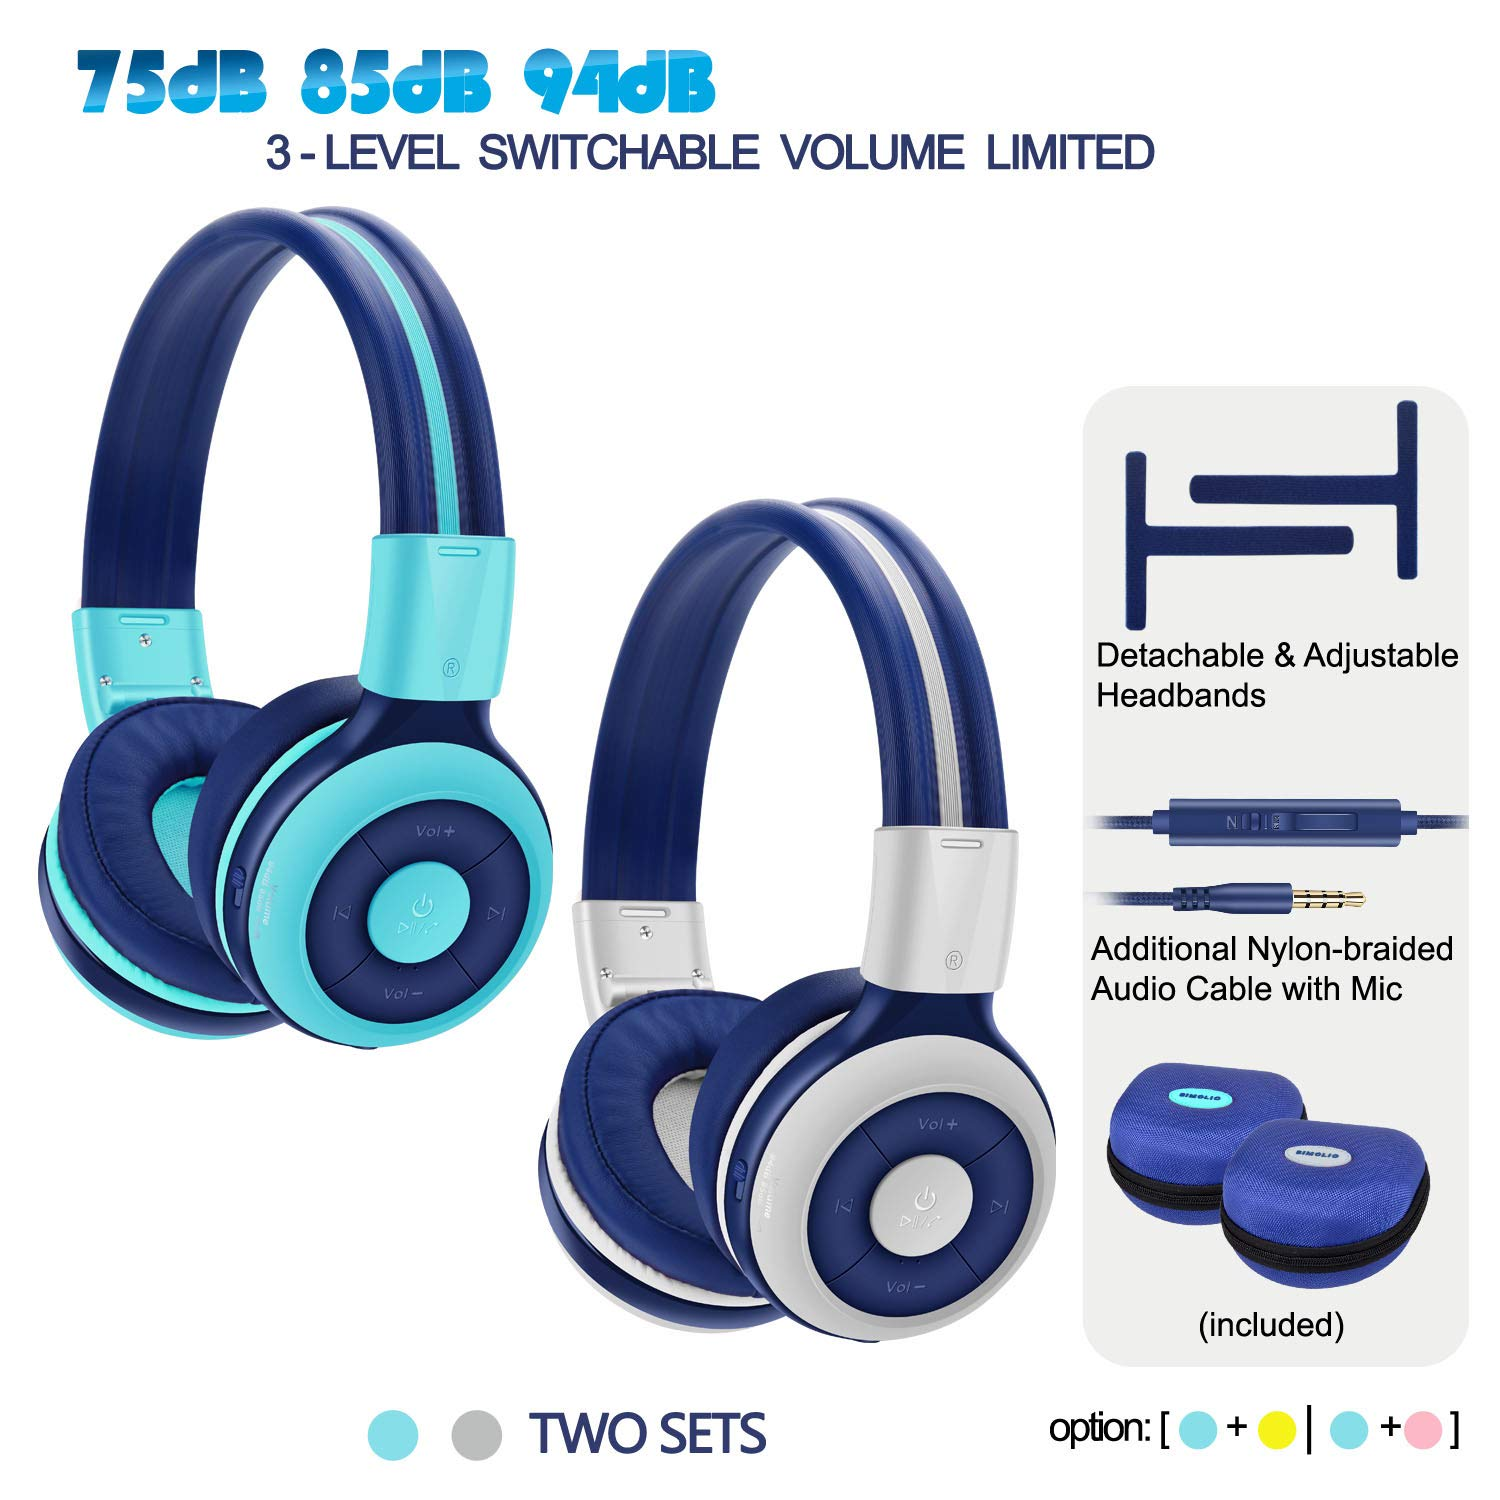 2 Pack of SIMOLIO Bluetooth Headphone for Teens, Kids Headphone with 75dB,85dB,94dB Volume Limited, Kids Bluetooth Headphone with Mic, On-Ear Headset with in-Line Audio Control for Game (Mint+Grey)